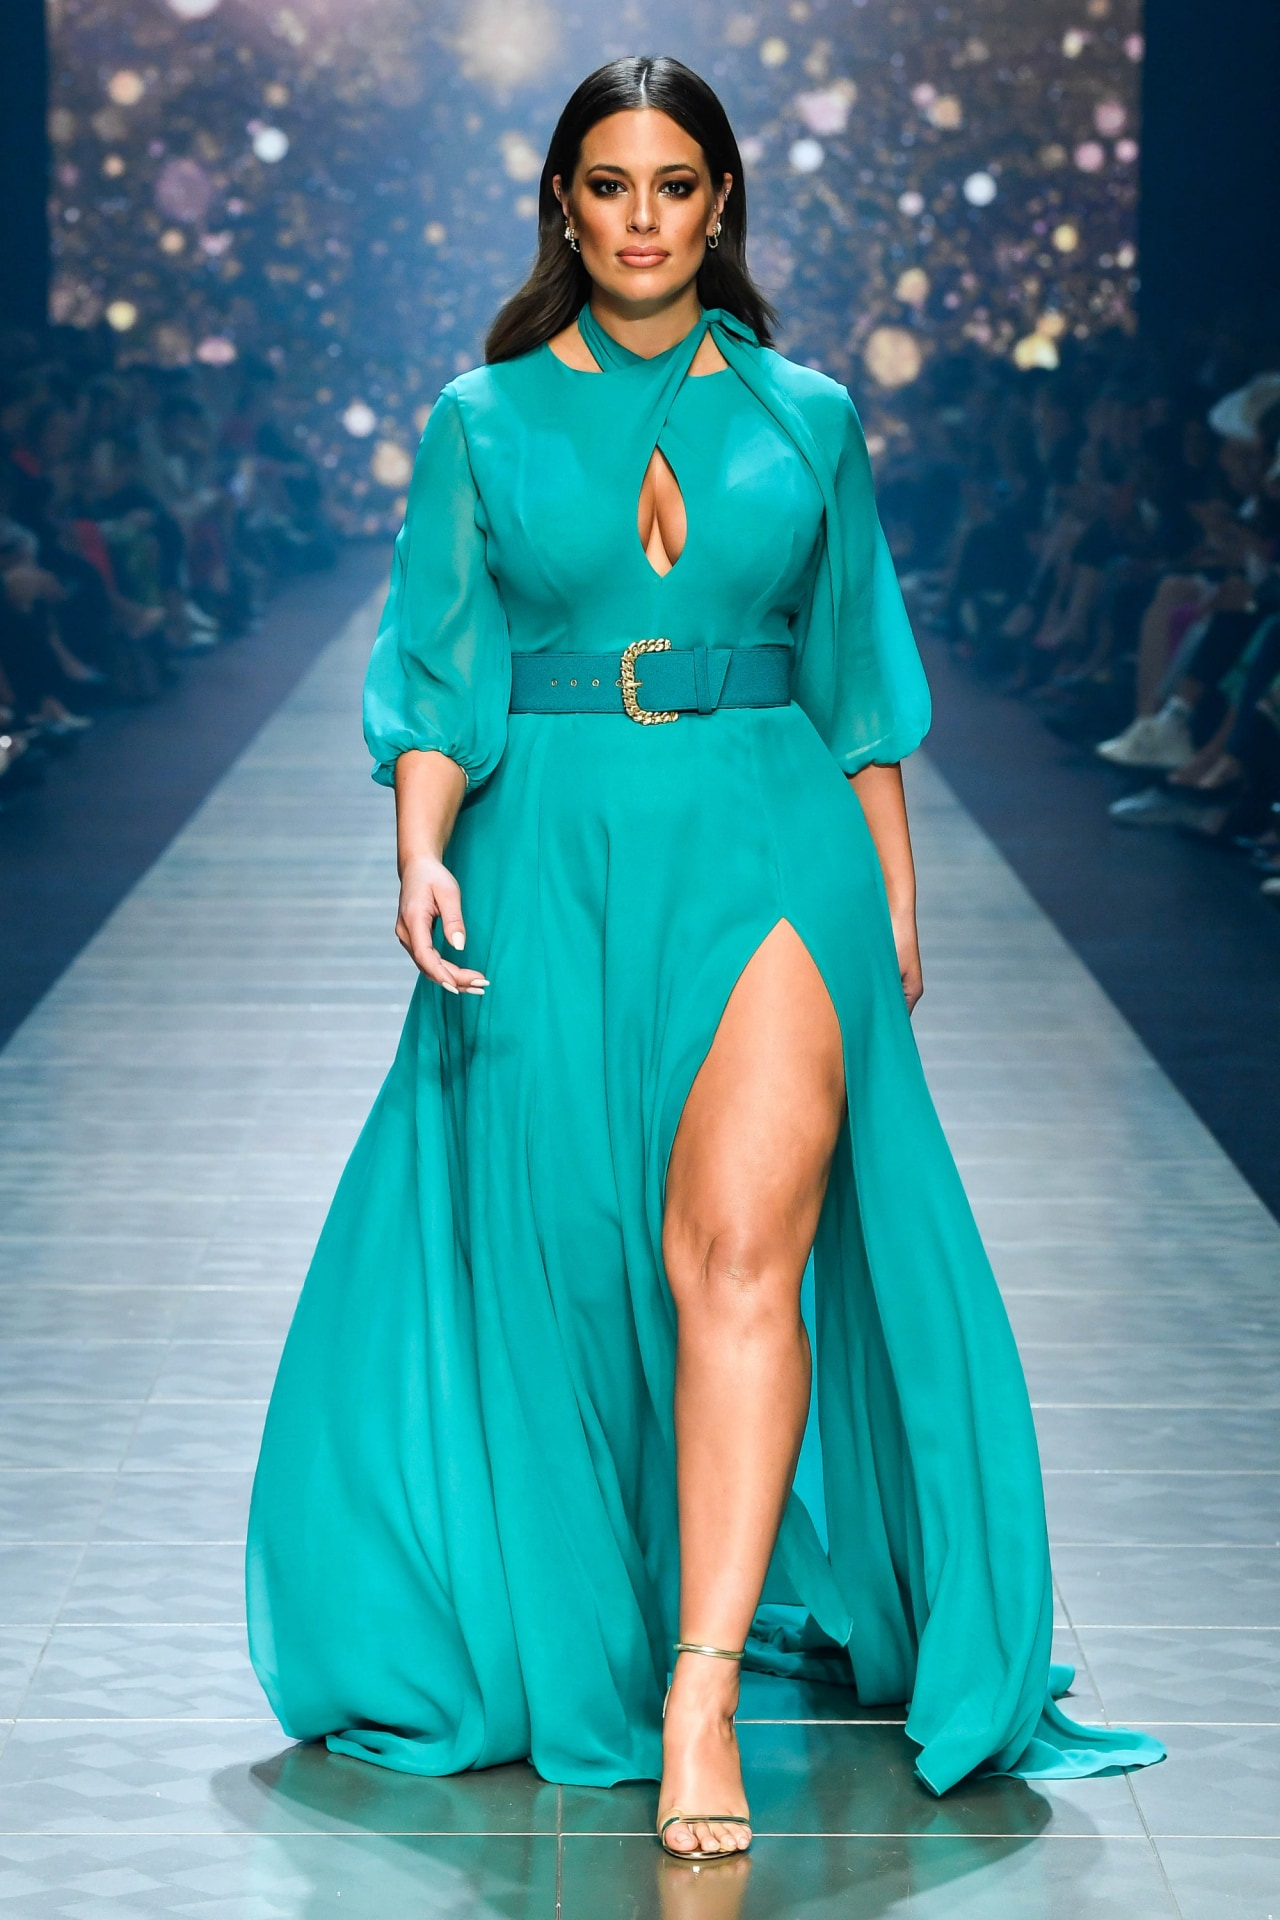 Ashley Graham walks the runway at VAMFF 2019. Image credit: Supplied